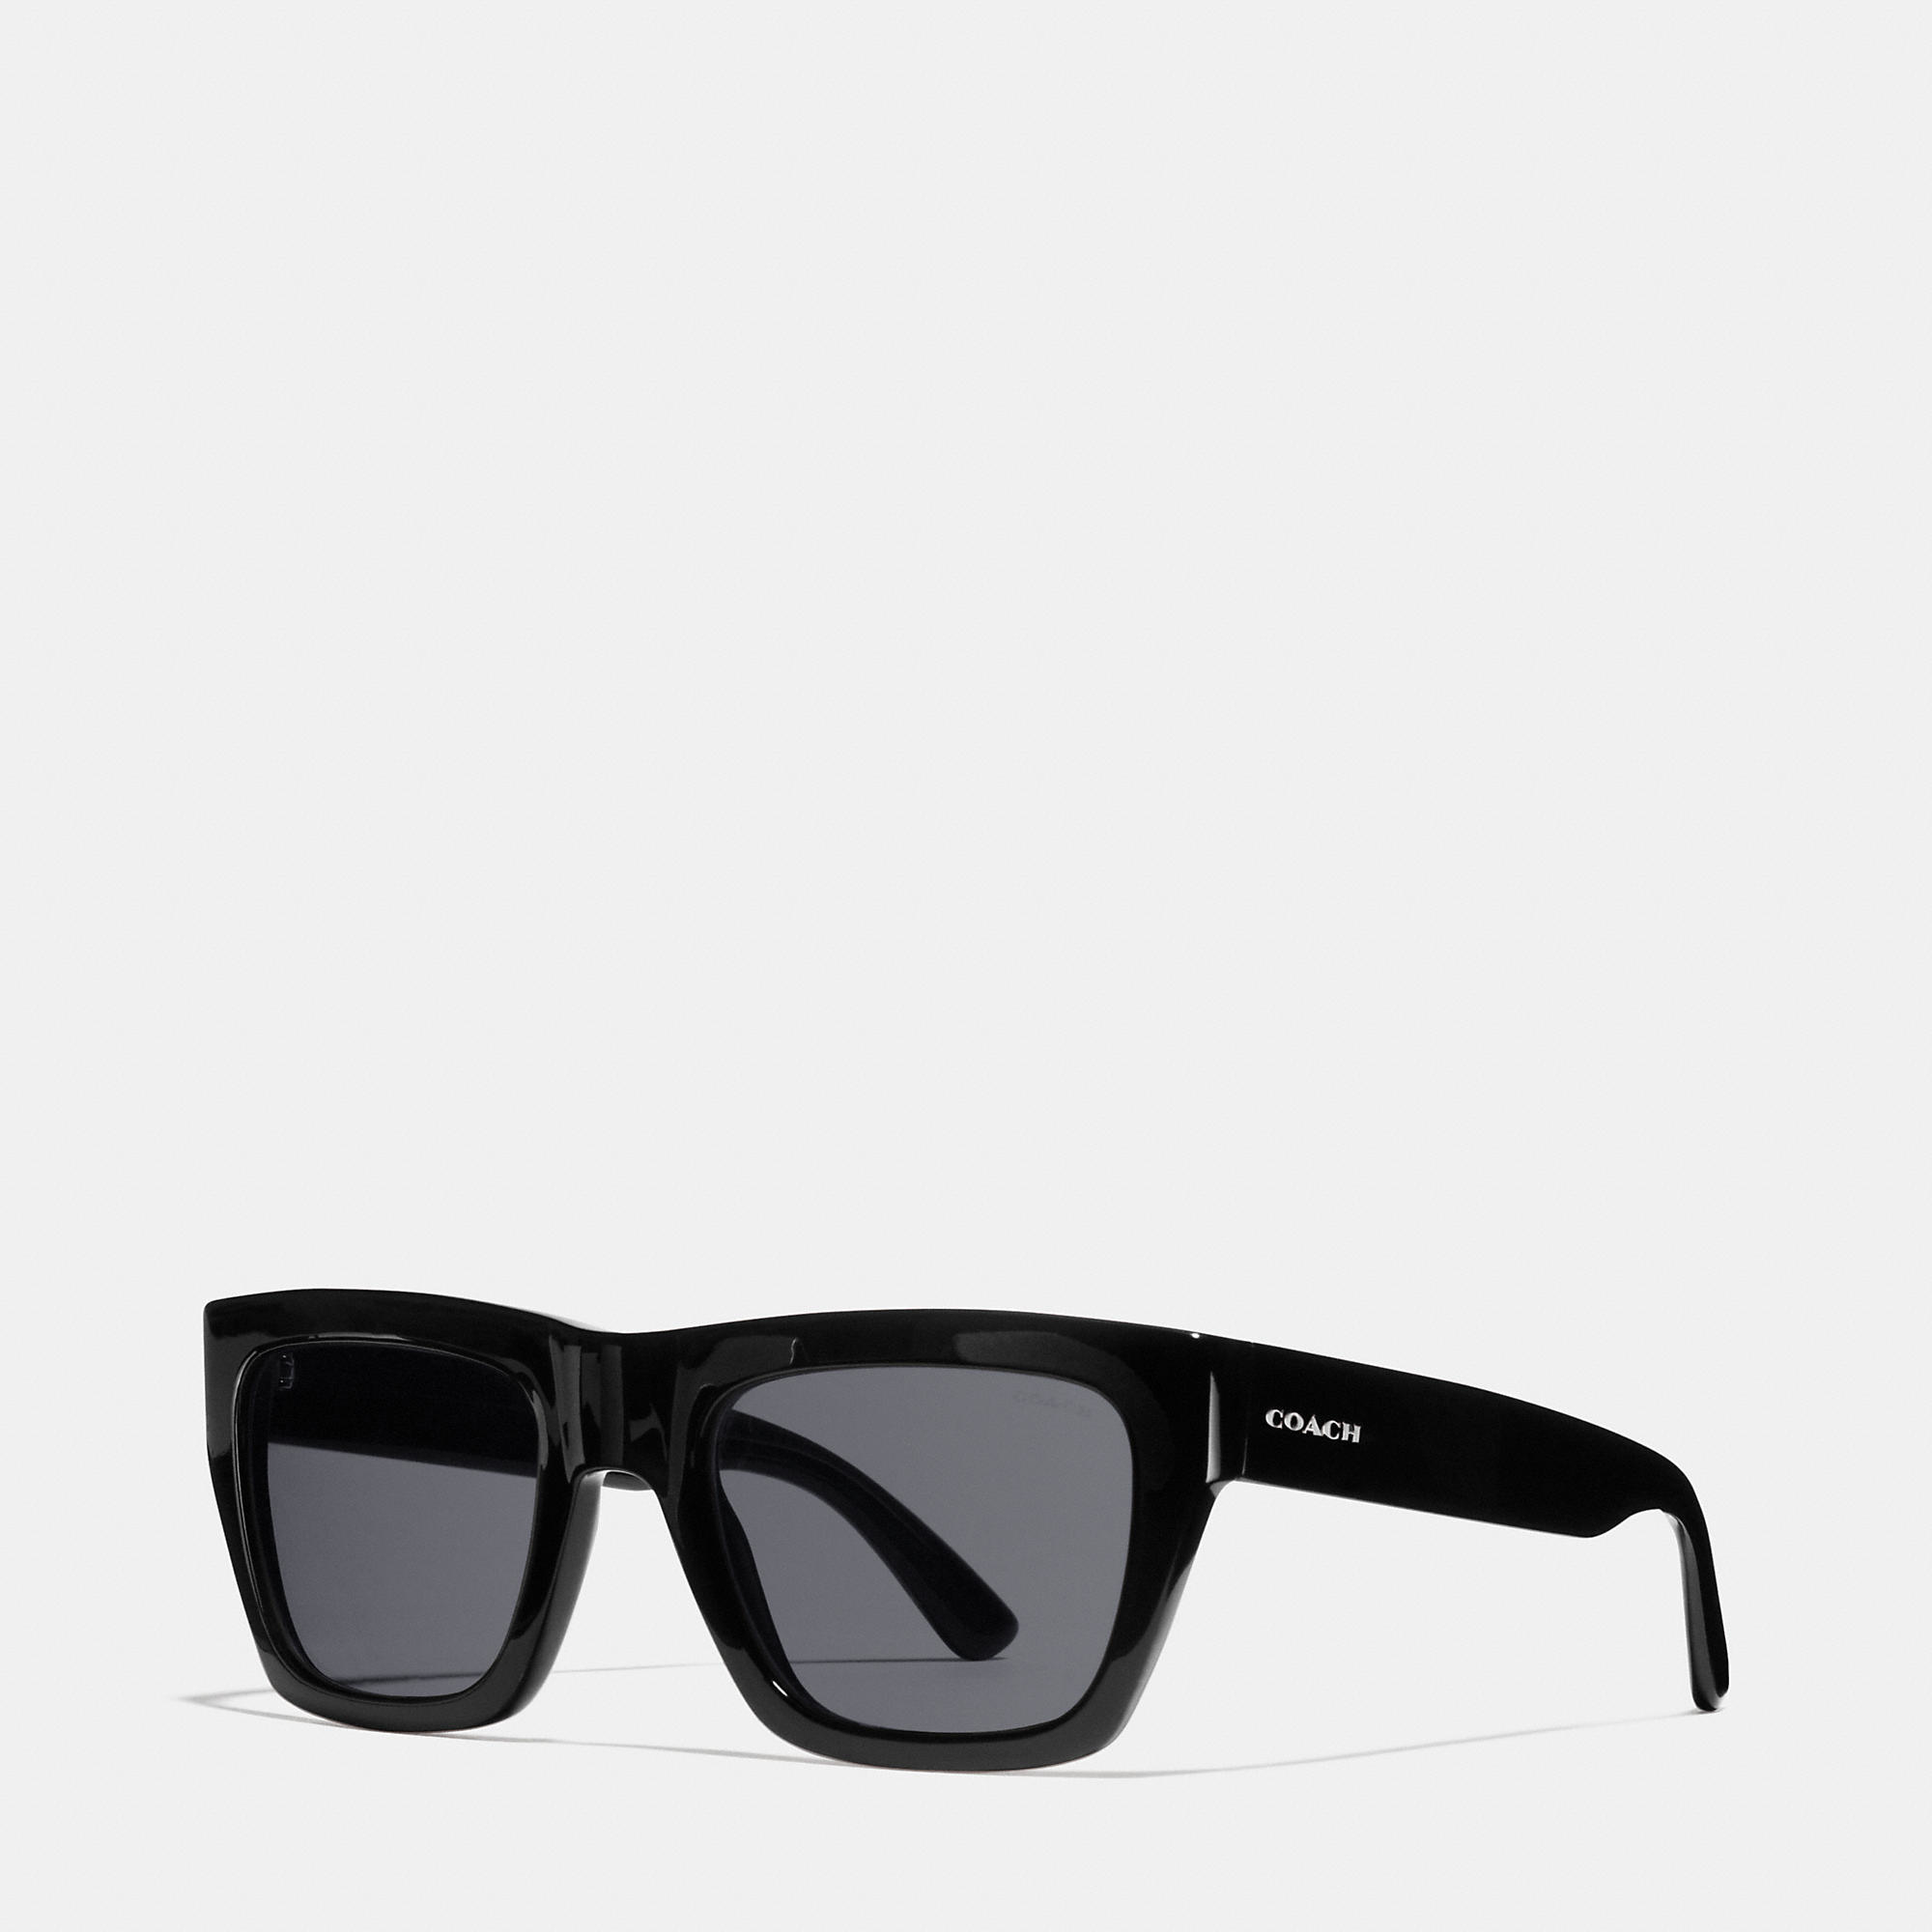 682f3206b971f ... coupon for lyst coach commander sunglasses in black for men 7147c 709a1